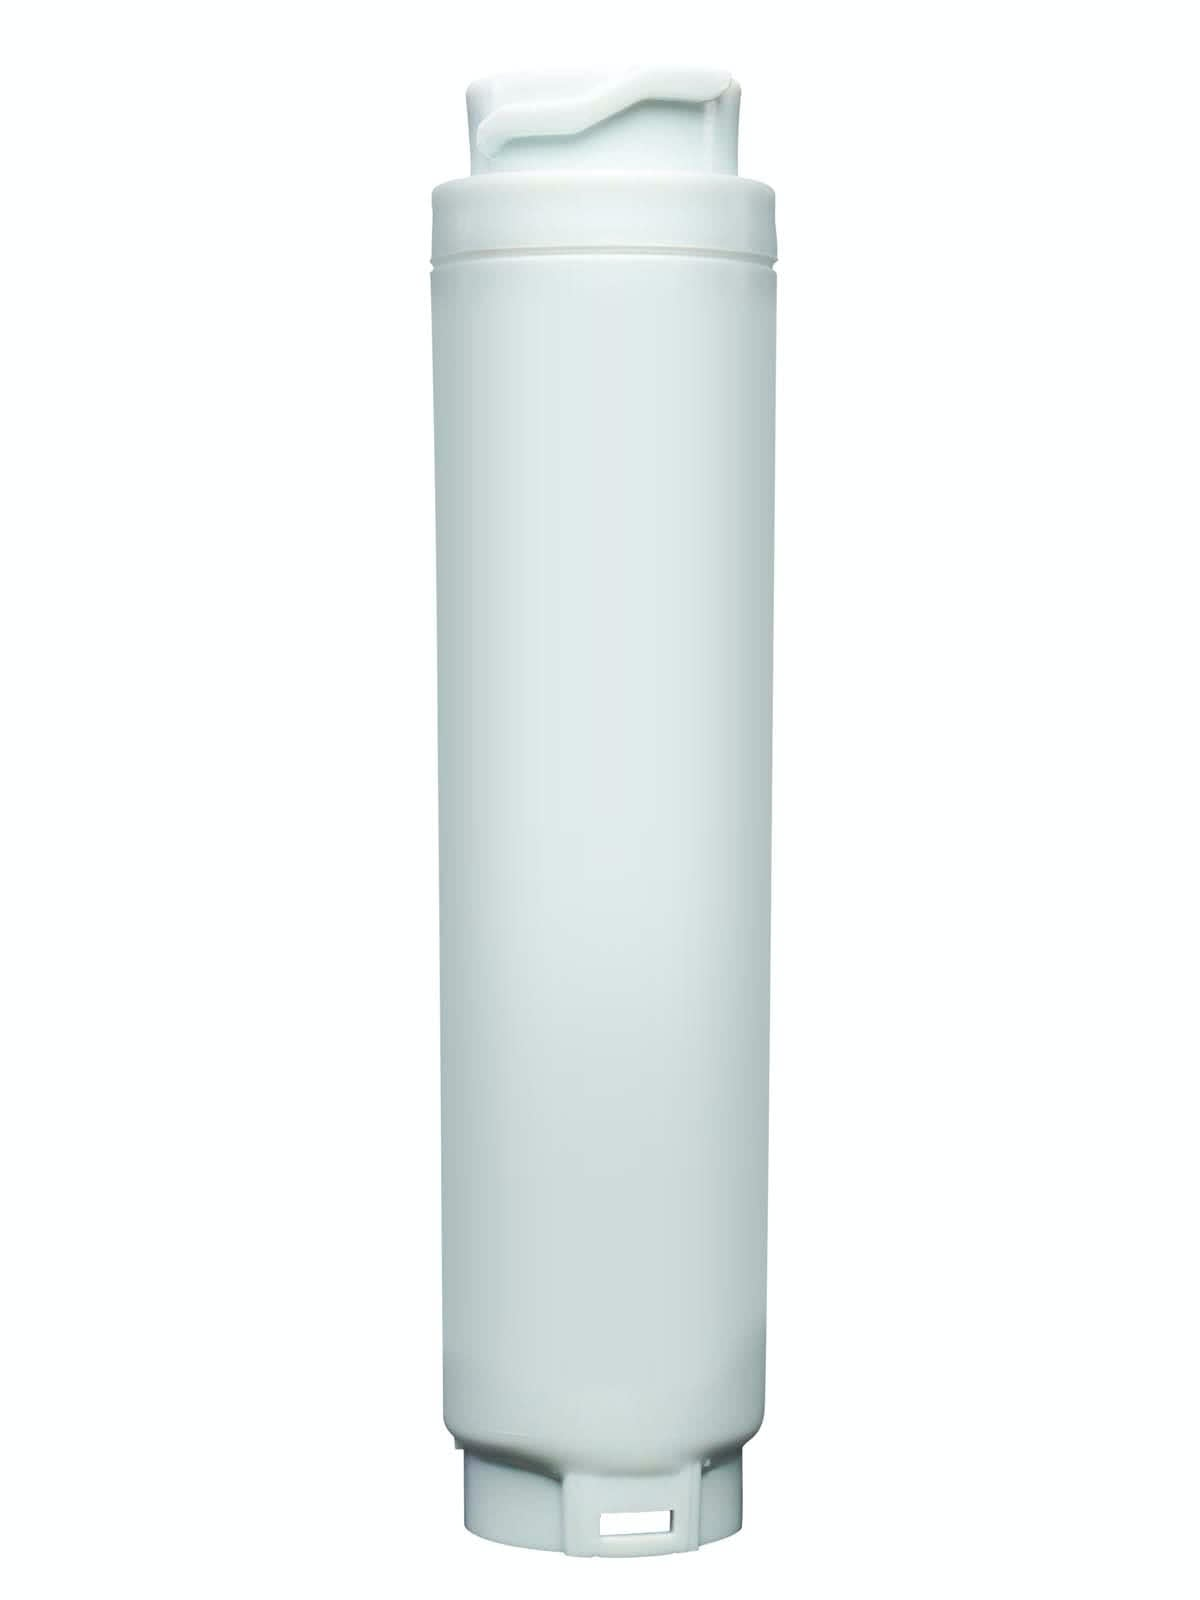 Bosch compatible second nature water filter